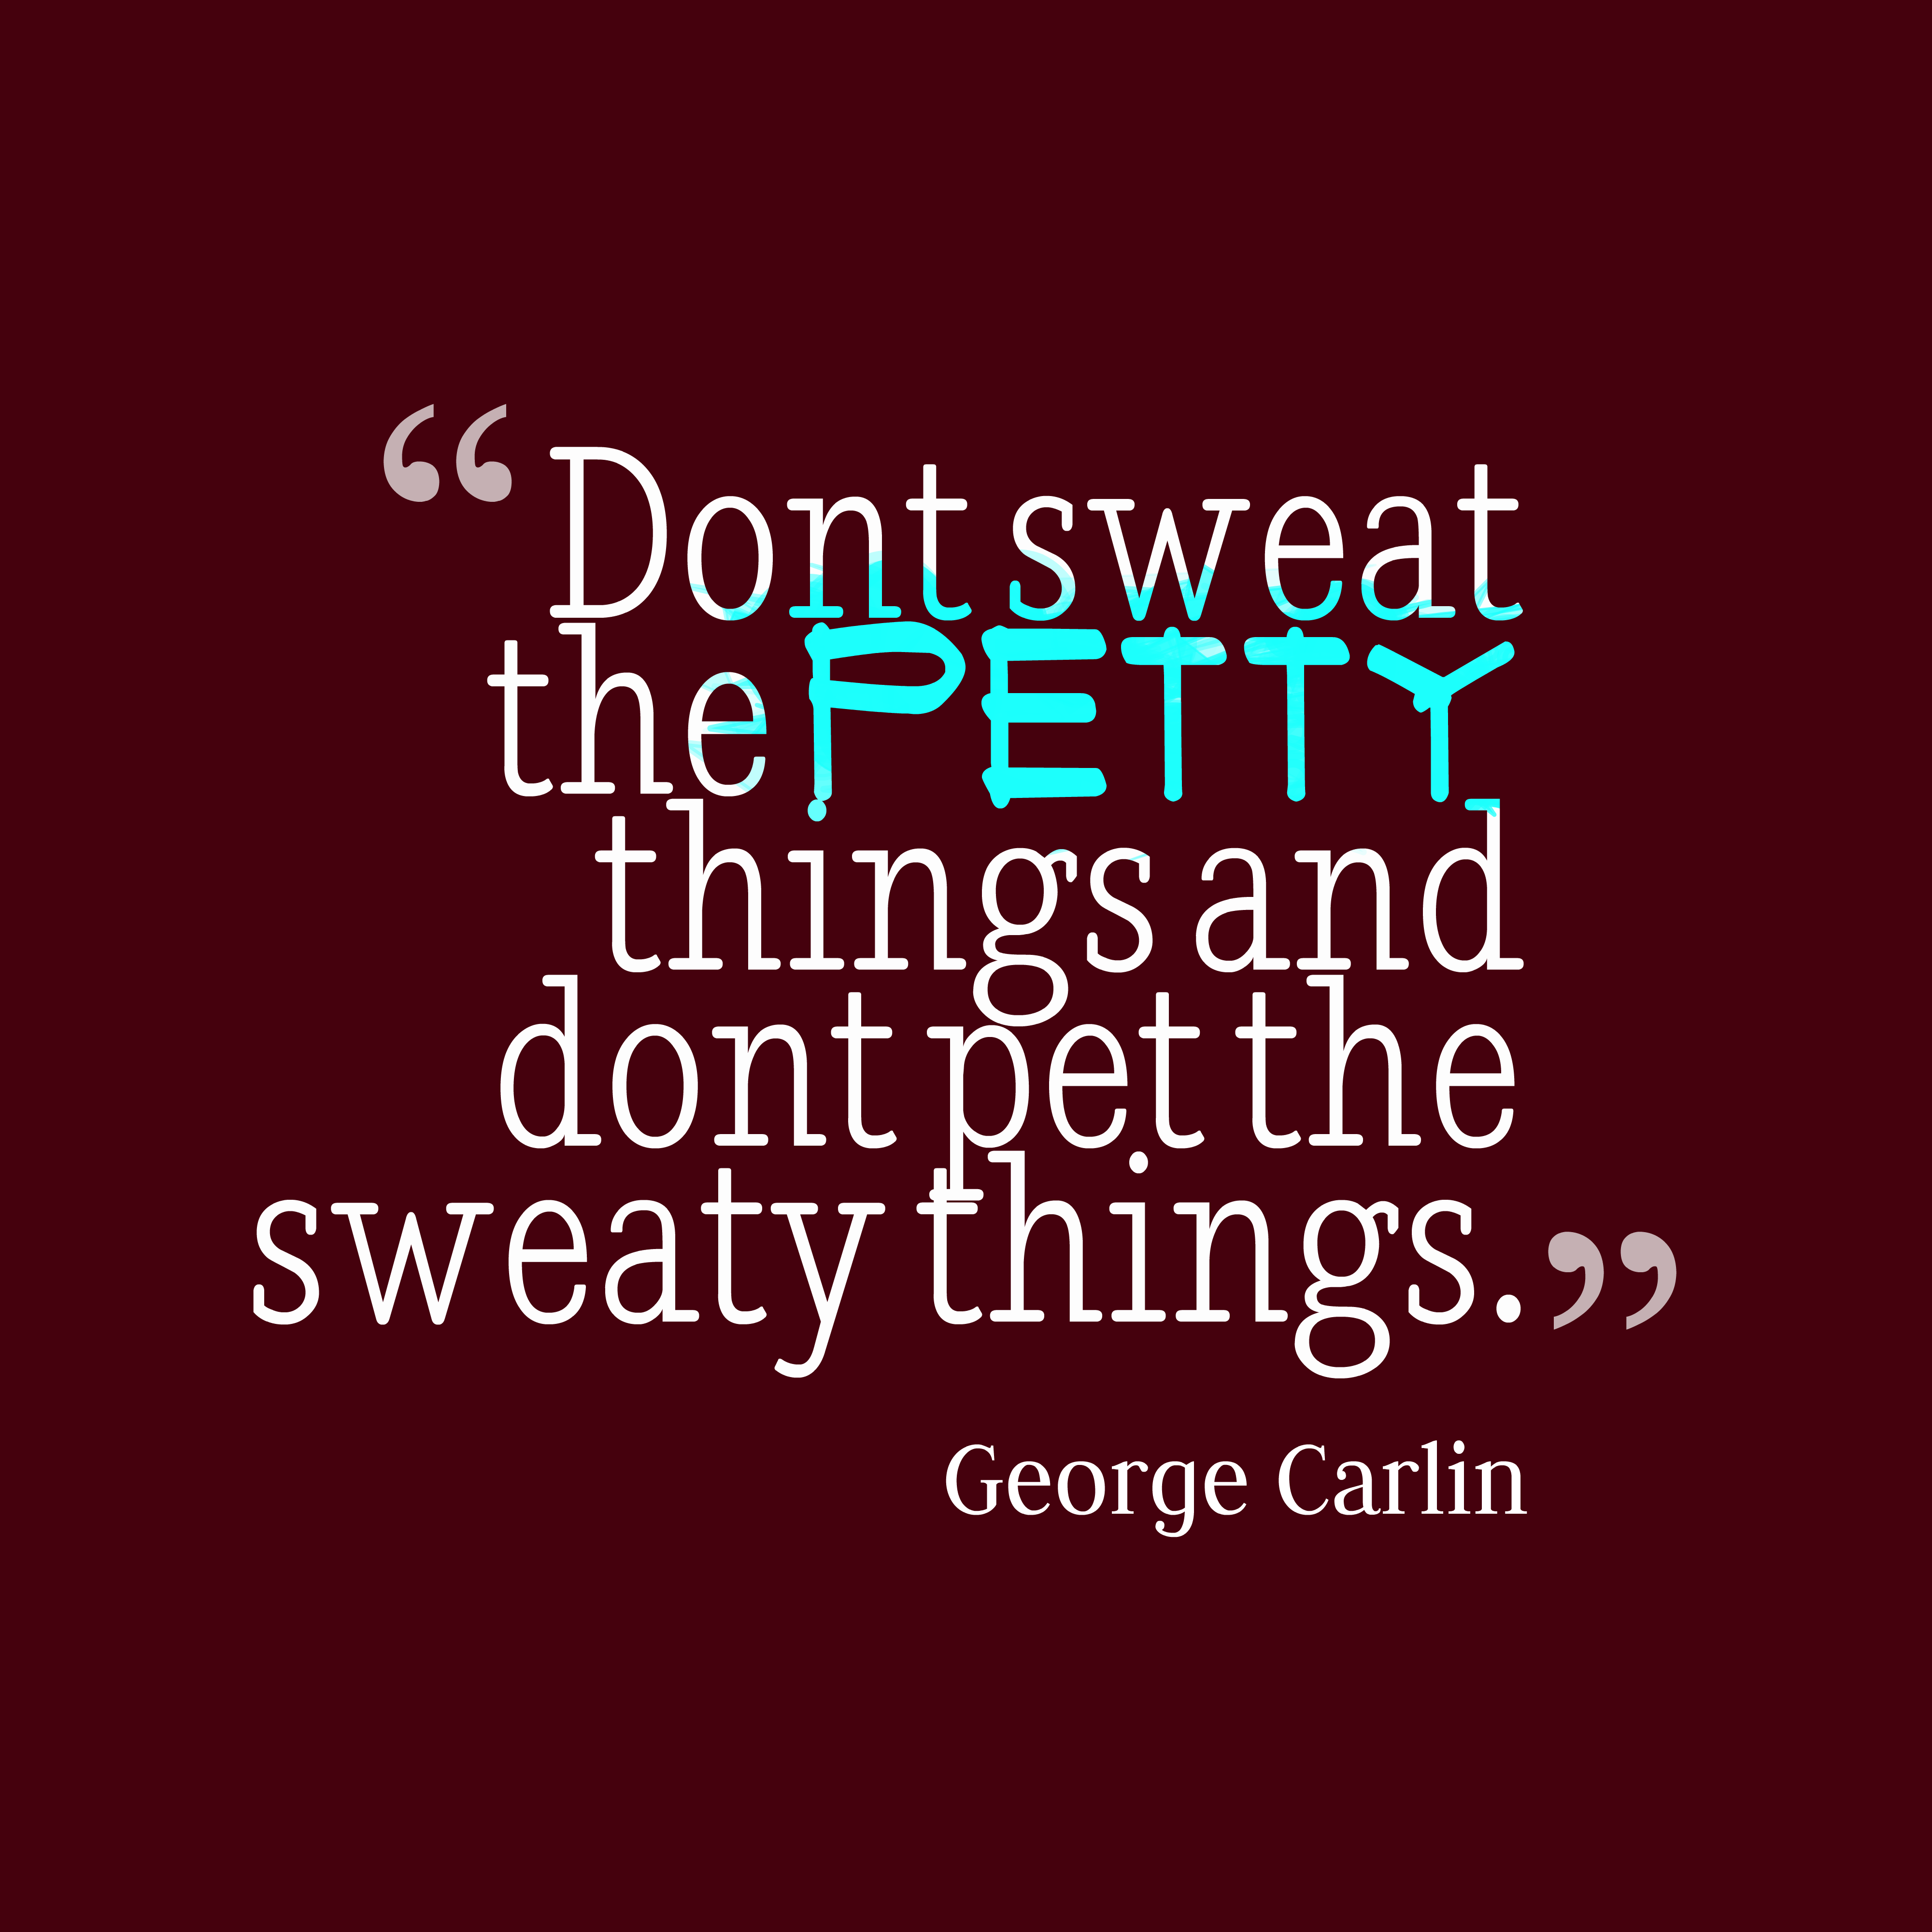 hi-res image of Don't sweat the %23petty things and don't pet the sweaty things.